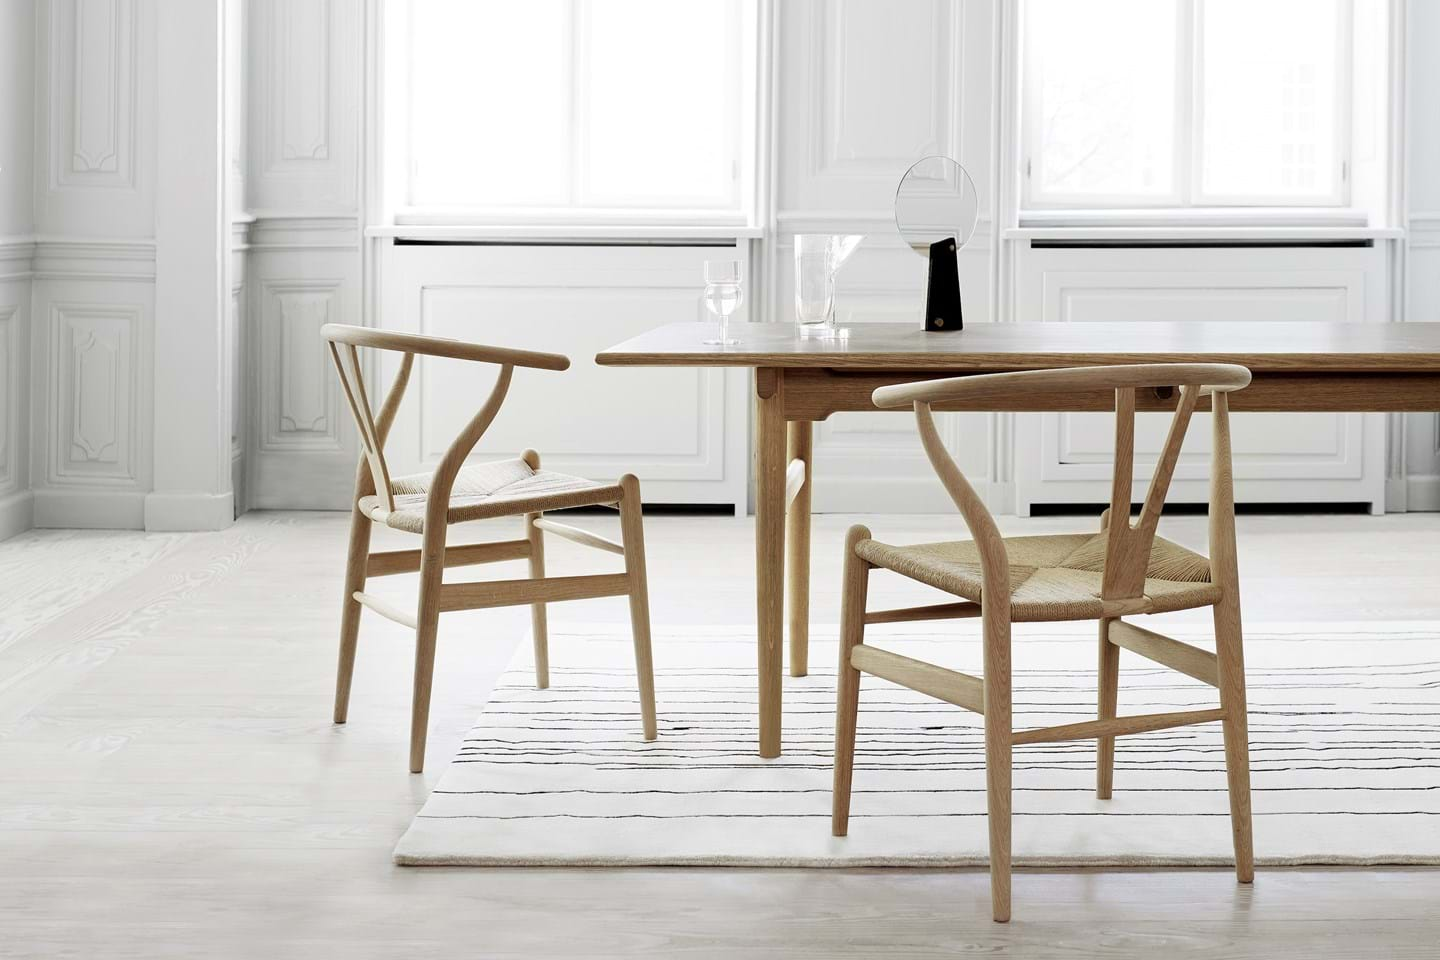 Behind An Icon Ch24 Story Carl, Black Wishbone Chairs Dining Room Set